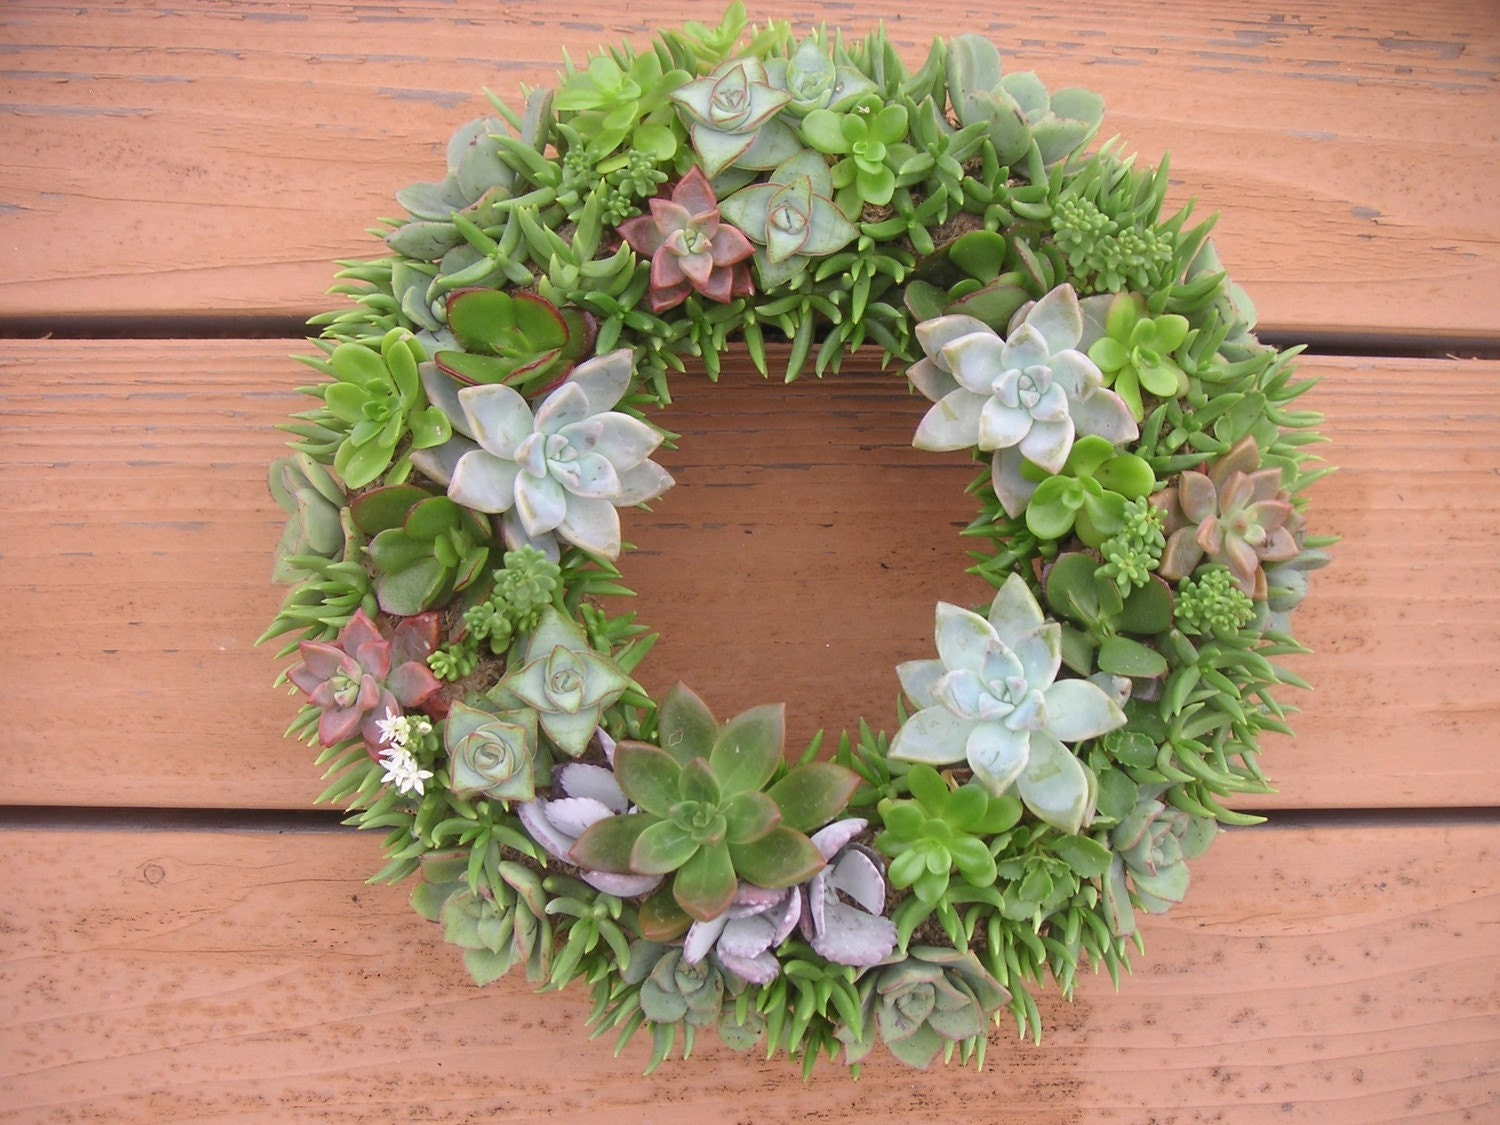 Reserved For Kristin, 2 16 Inch Beautiful Succulent Wreaths For Her Wedding, February 21 Ship Date